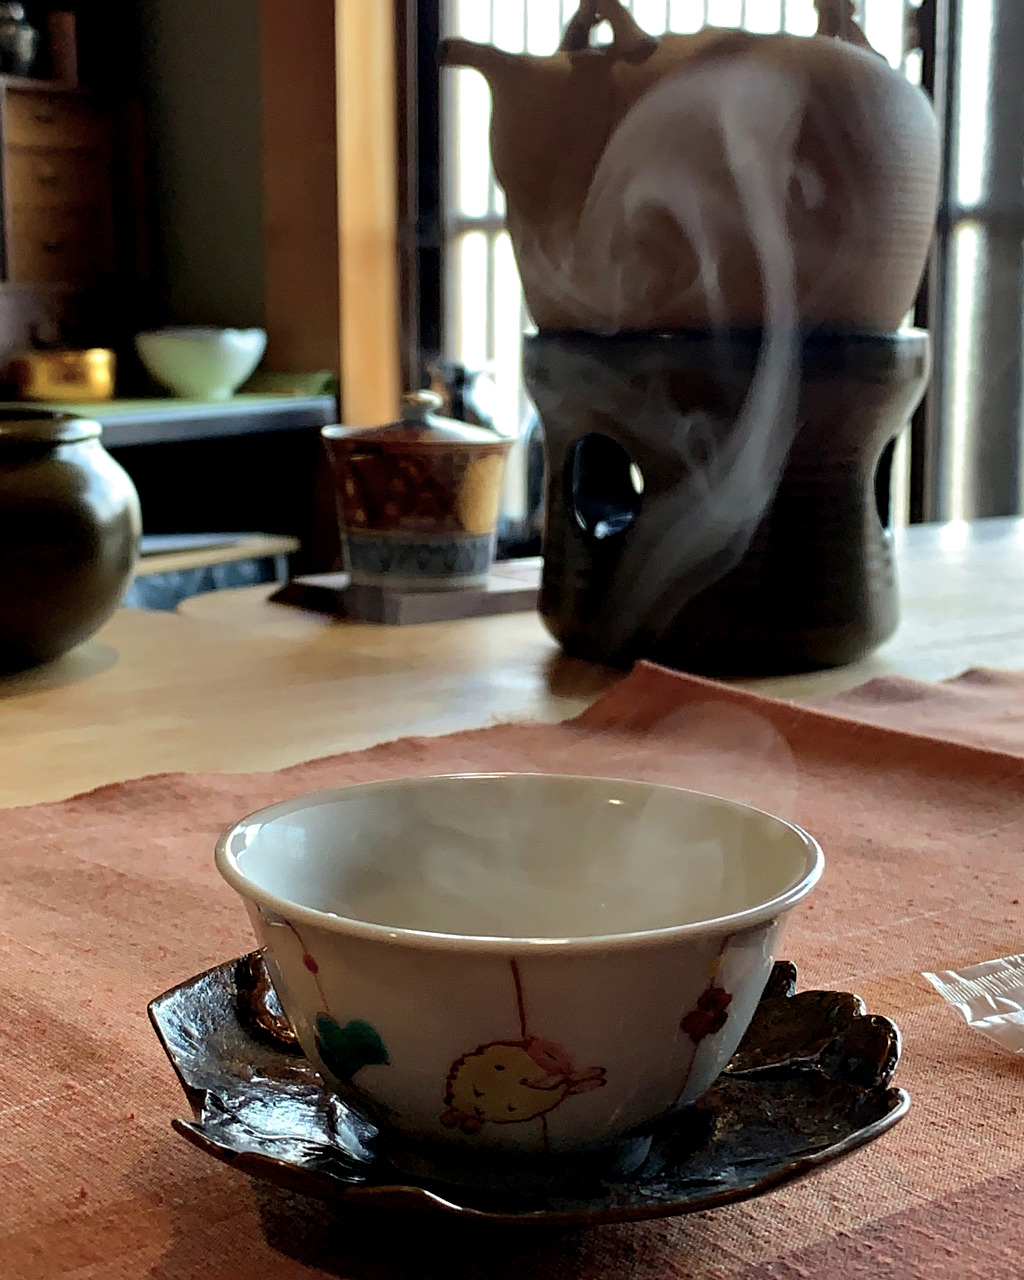 Hot cup of water for tea at Mikoto Tea House in Kanazawa, Japan